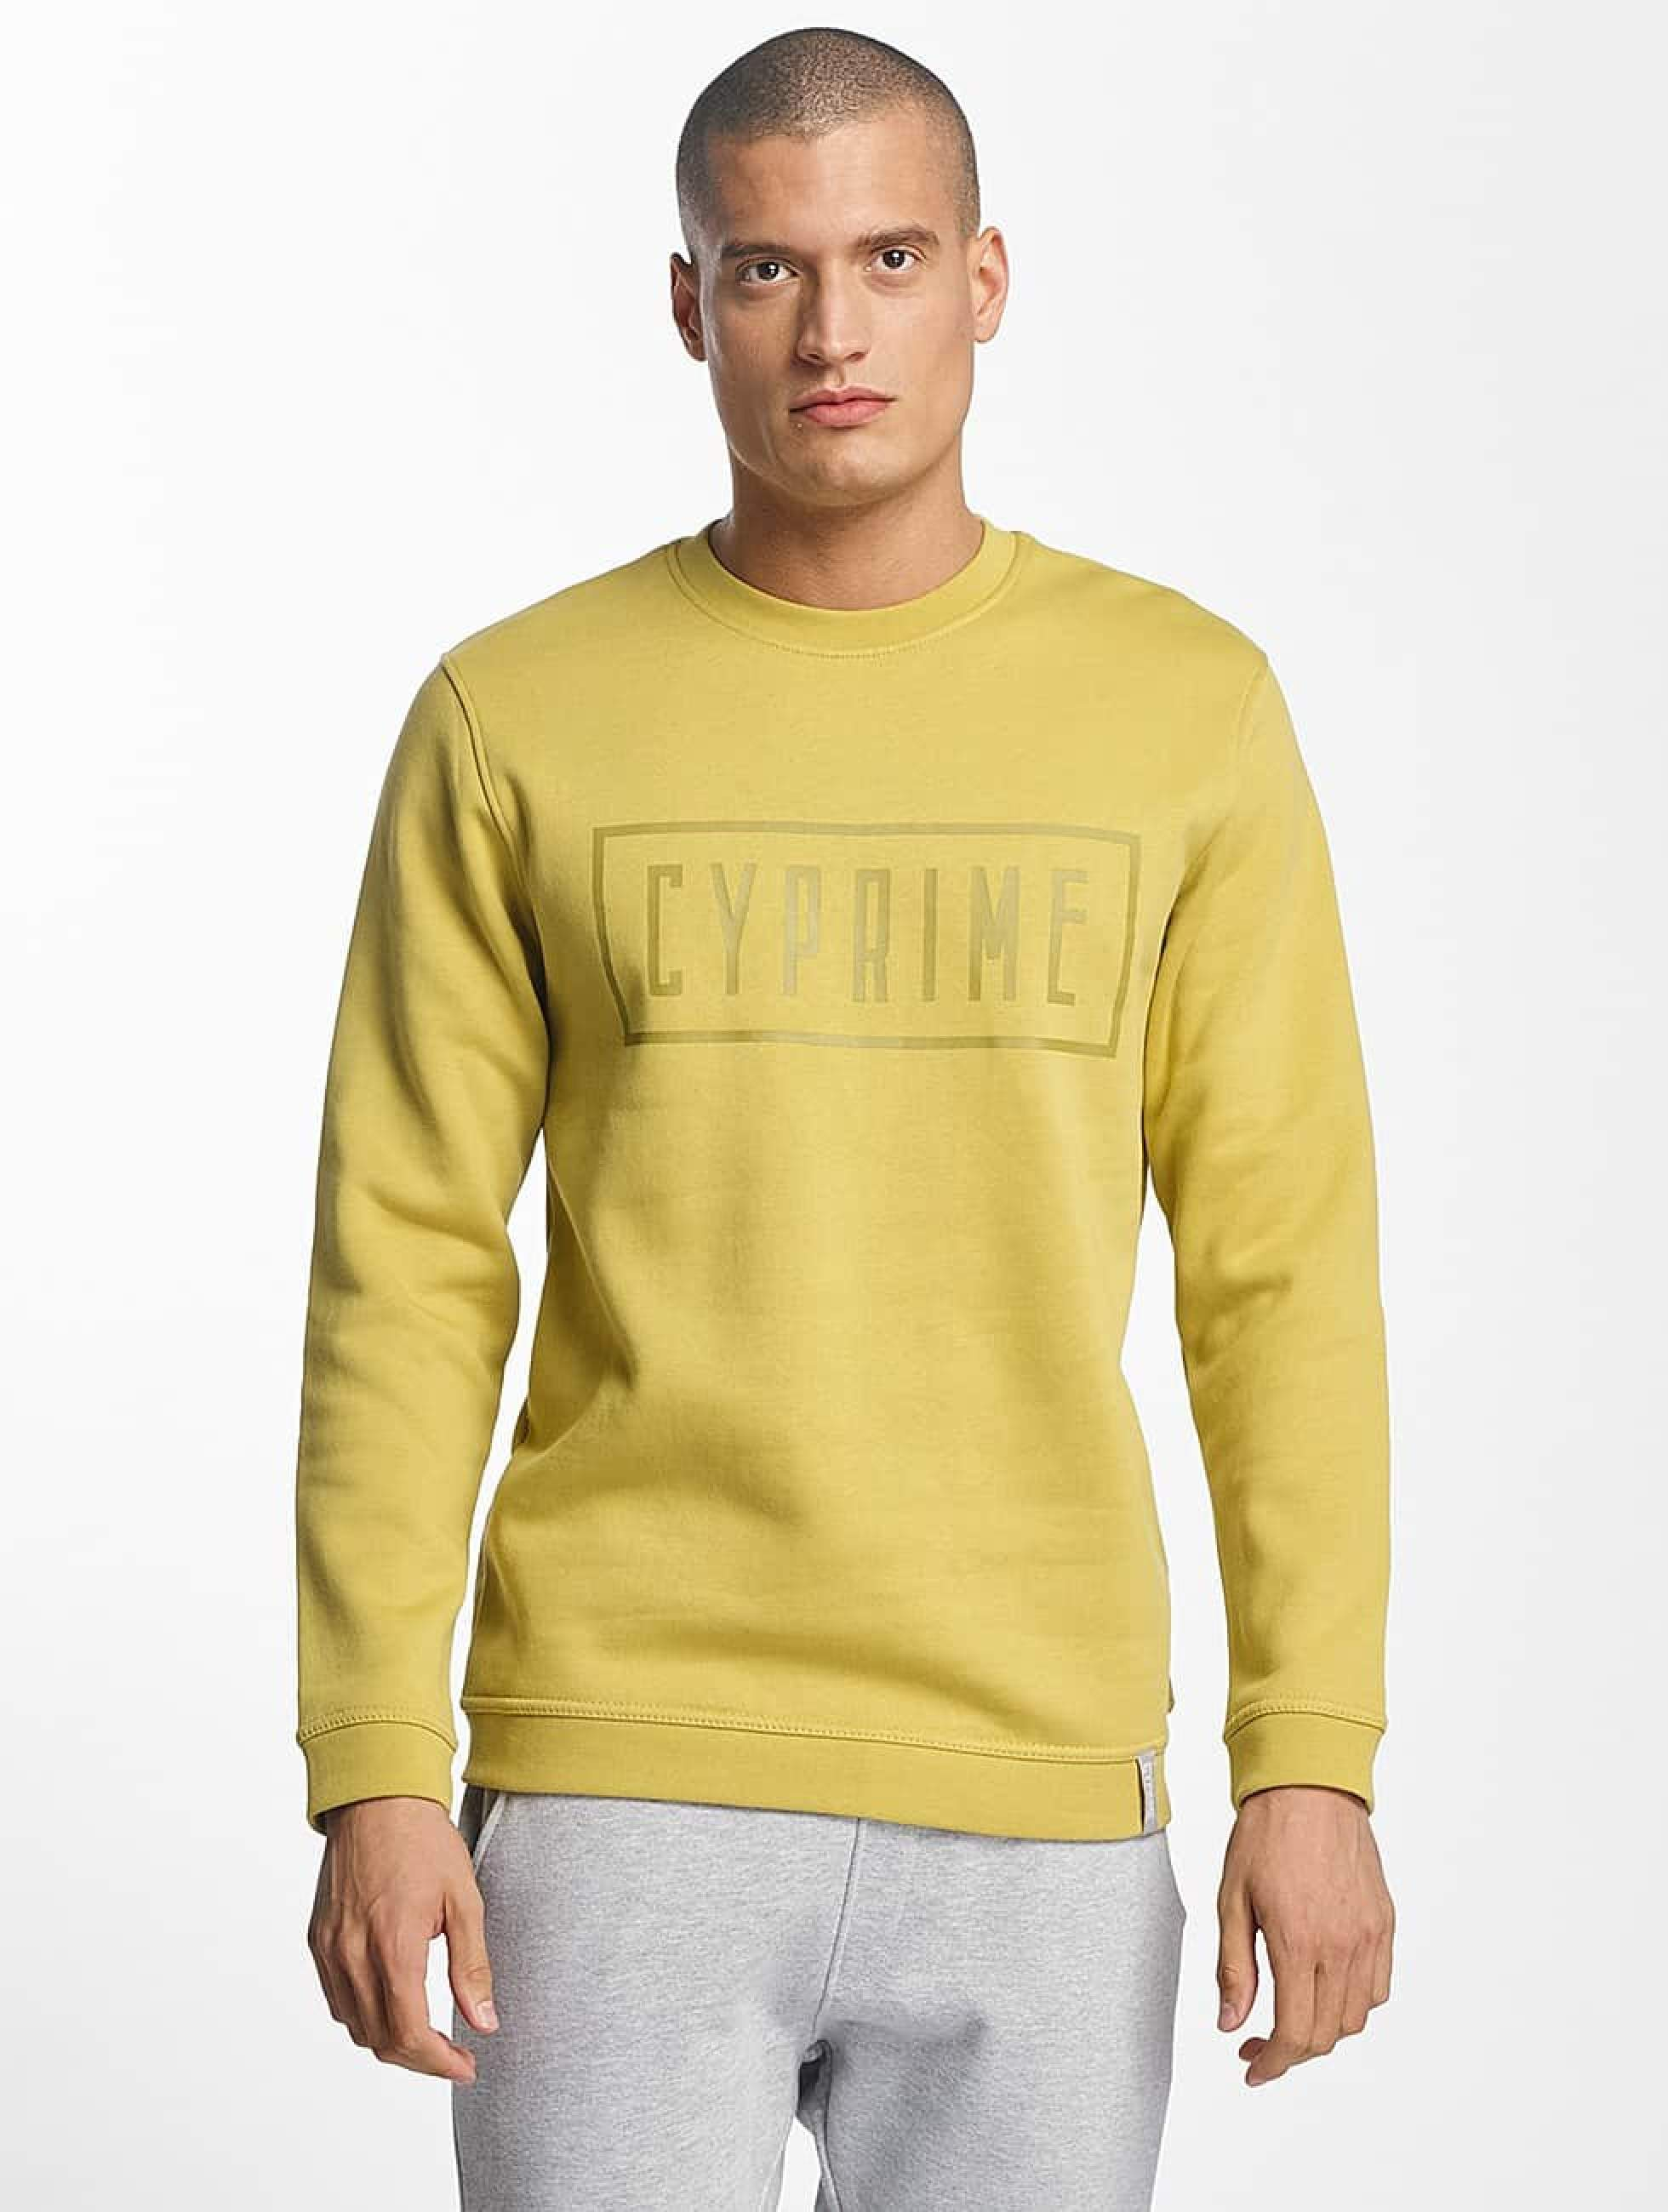 Cyprime / Jumper Radon in yellow S